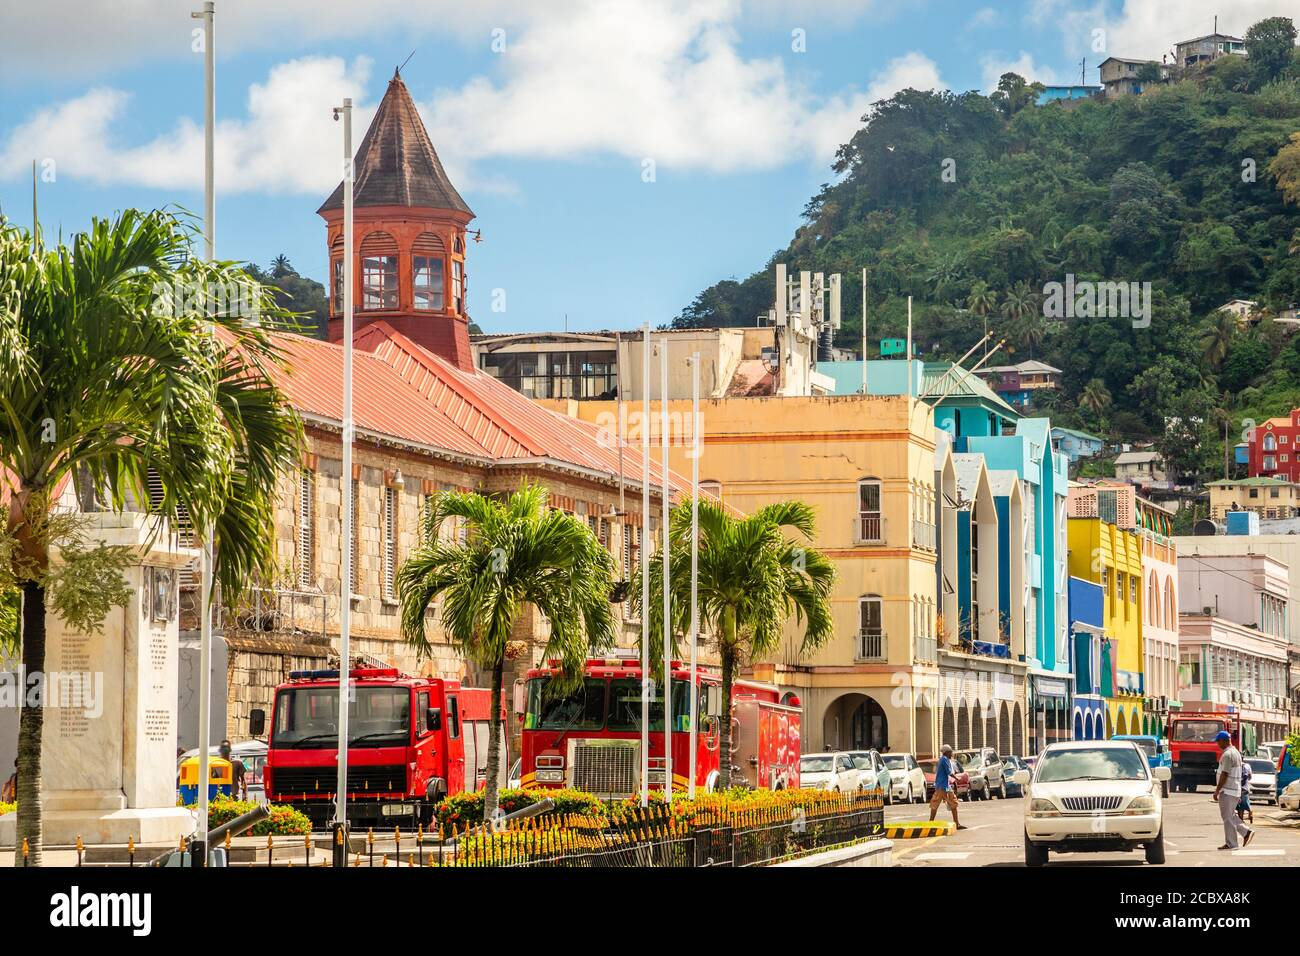 City center of caribbean town  Kingstown, Saint Vincent and the Grenadines Stock Photo